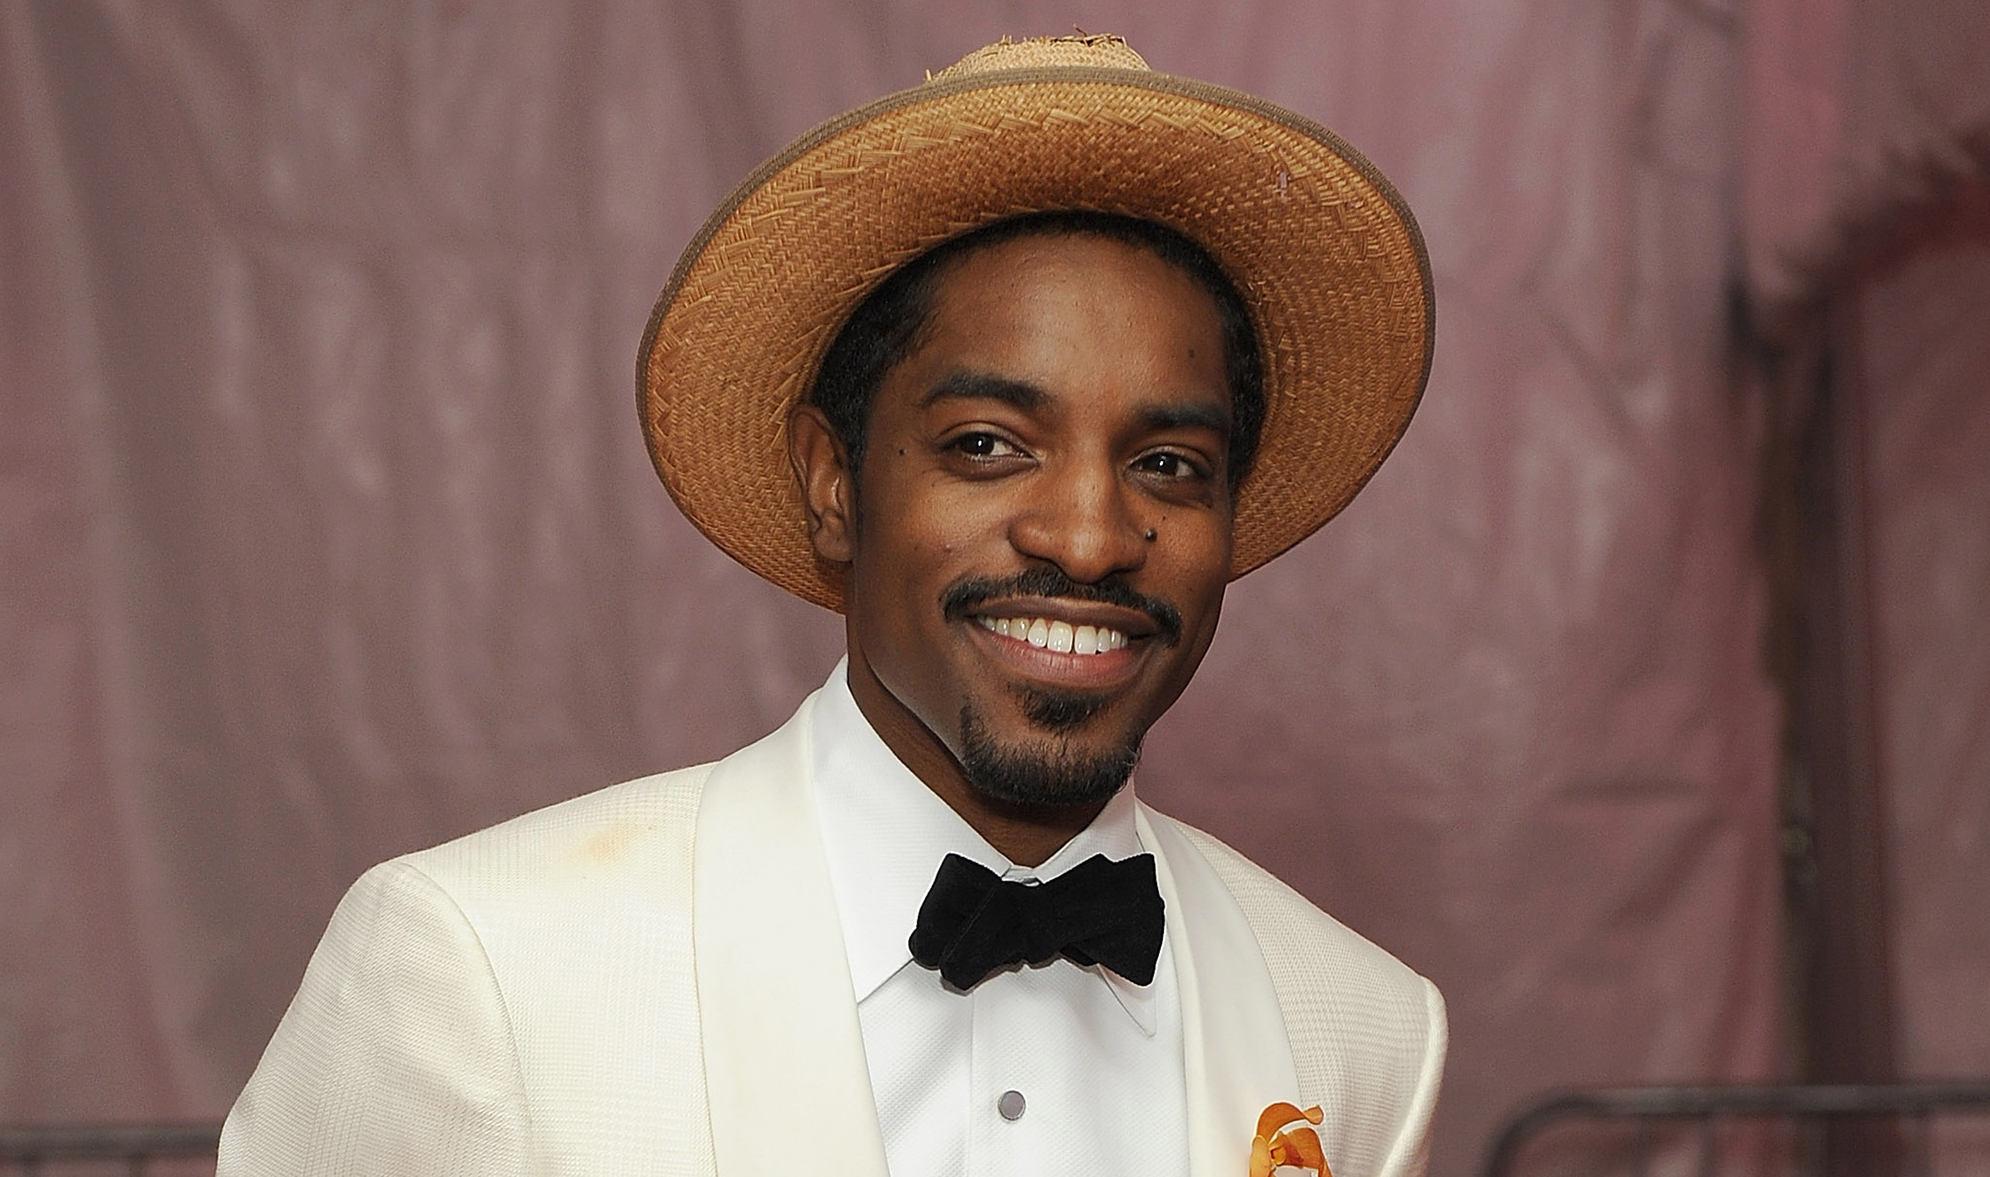 André 3000 earned a unknown million dollar salary, leaving the net worth at 45 million in 2017